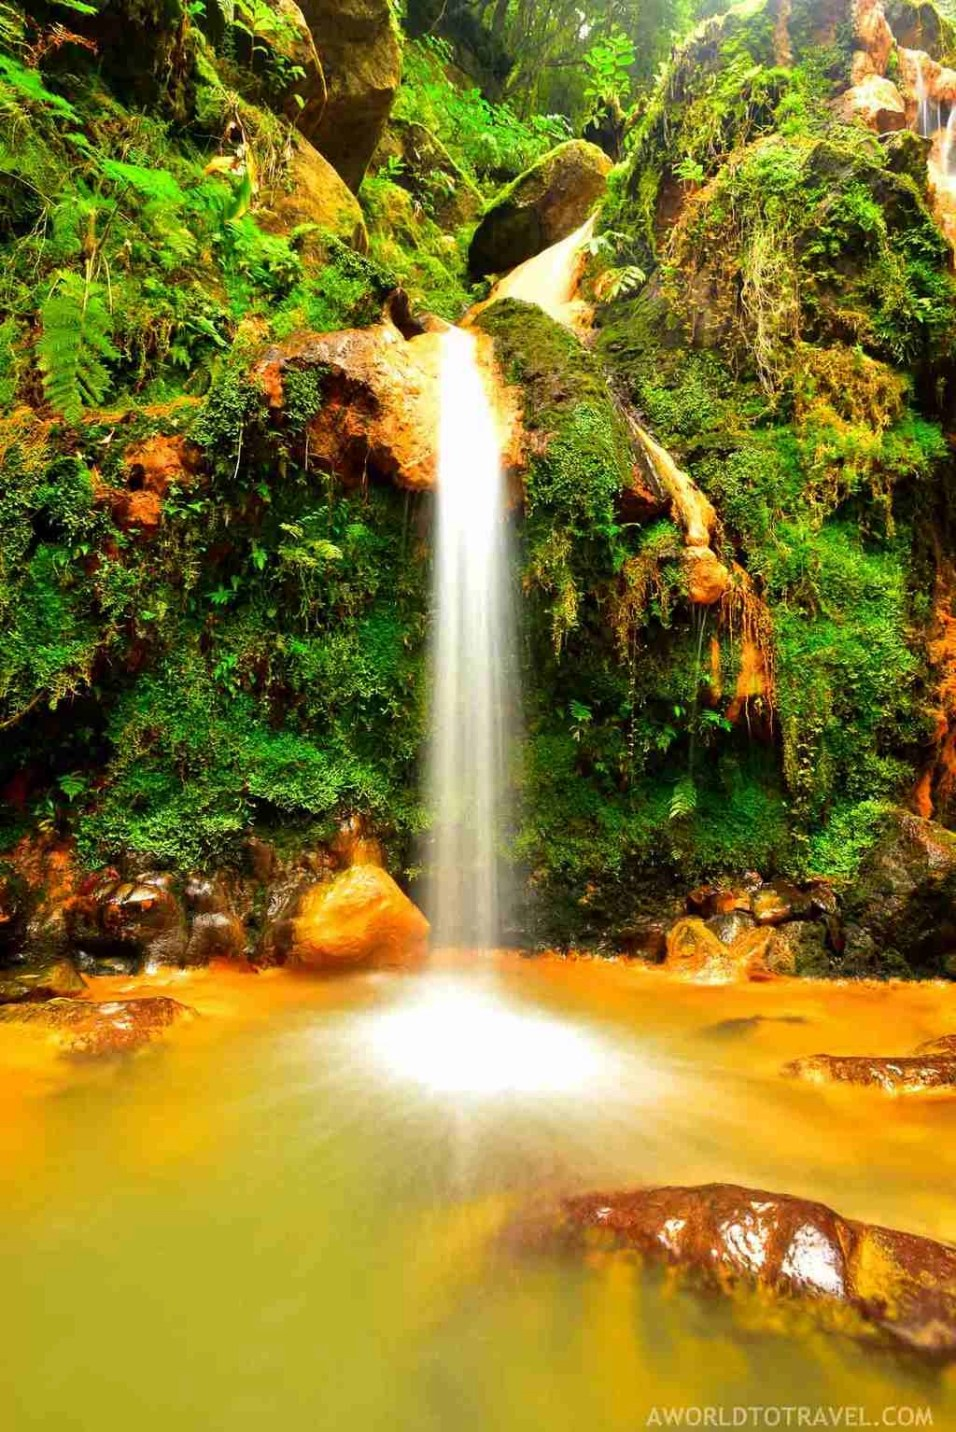 Caldeira Velha - Best Photography Locations in Sao Miguel - Azores Road Trip - A World to Travel (63)